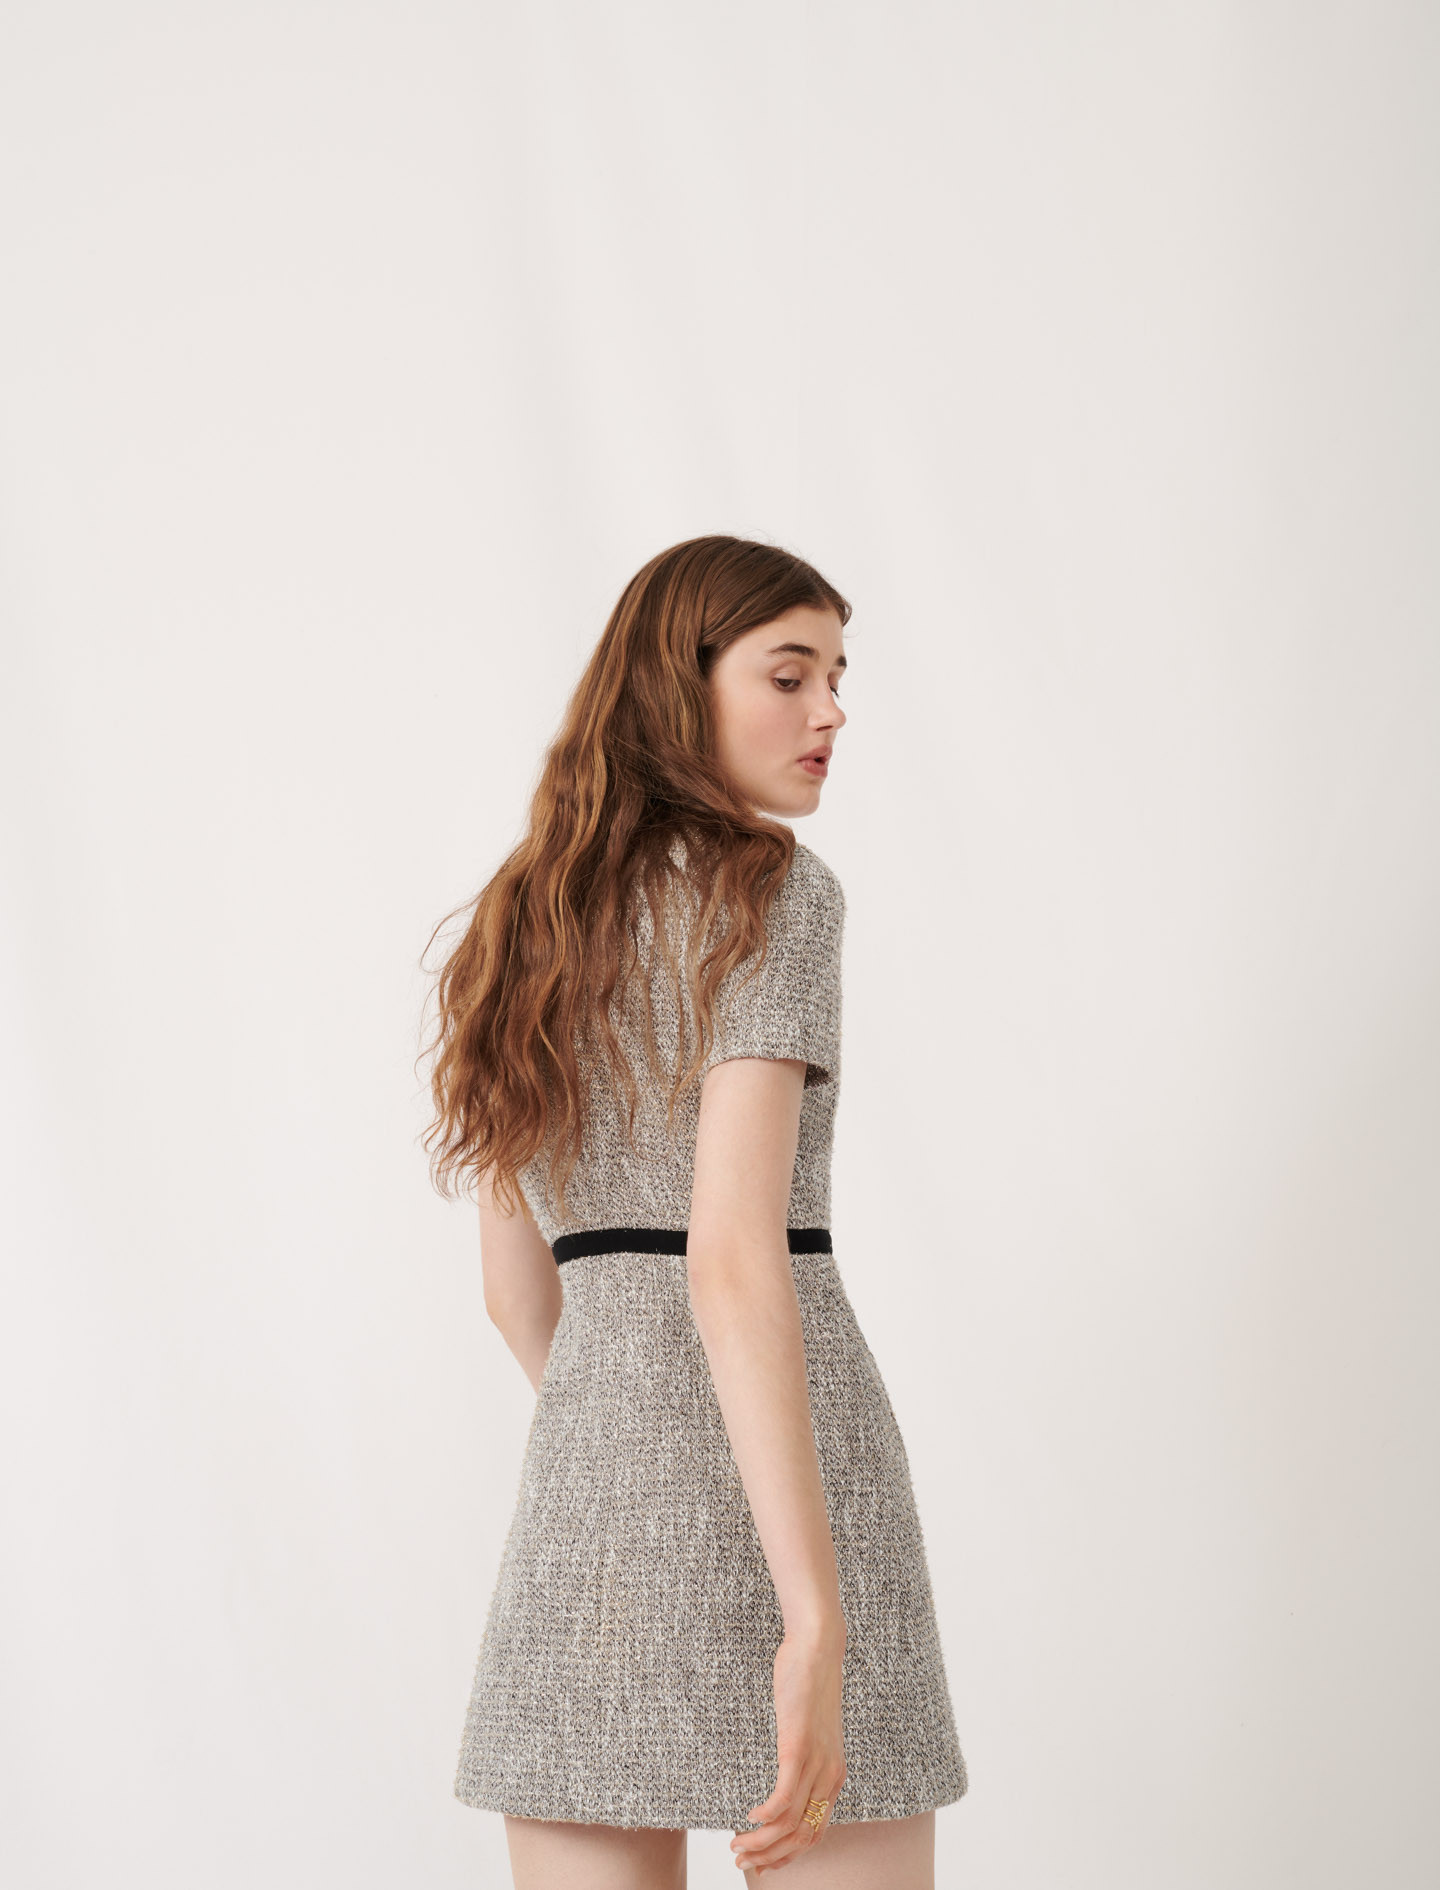 Tweed-style dress with contrast details - Silver